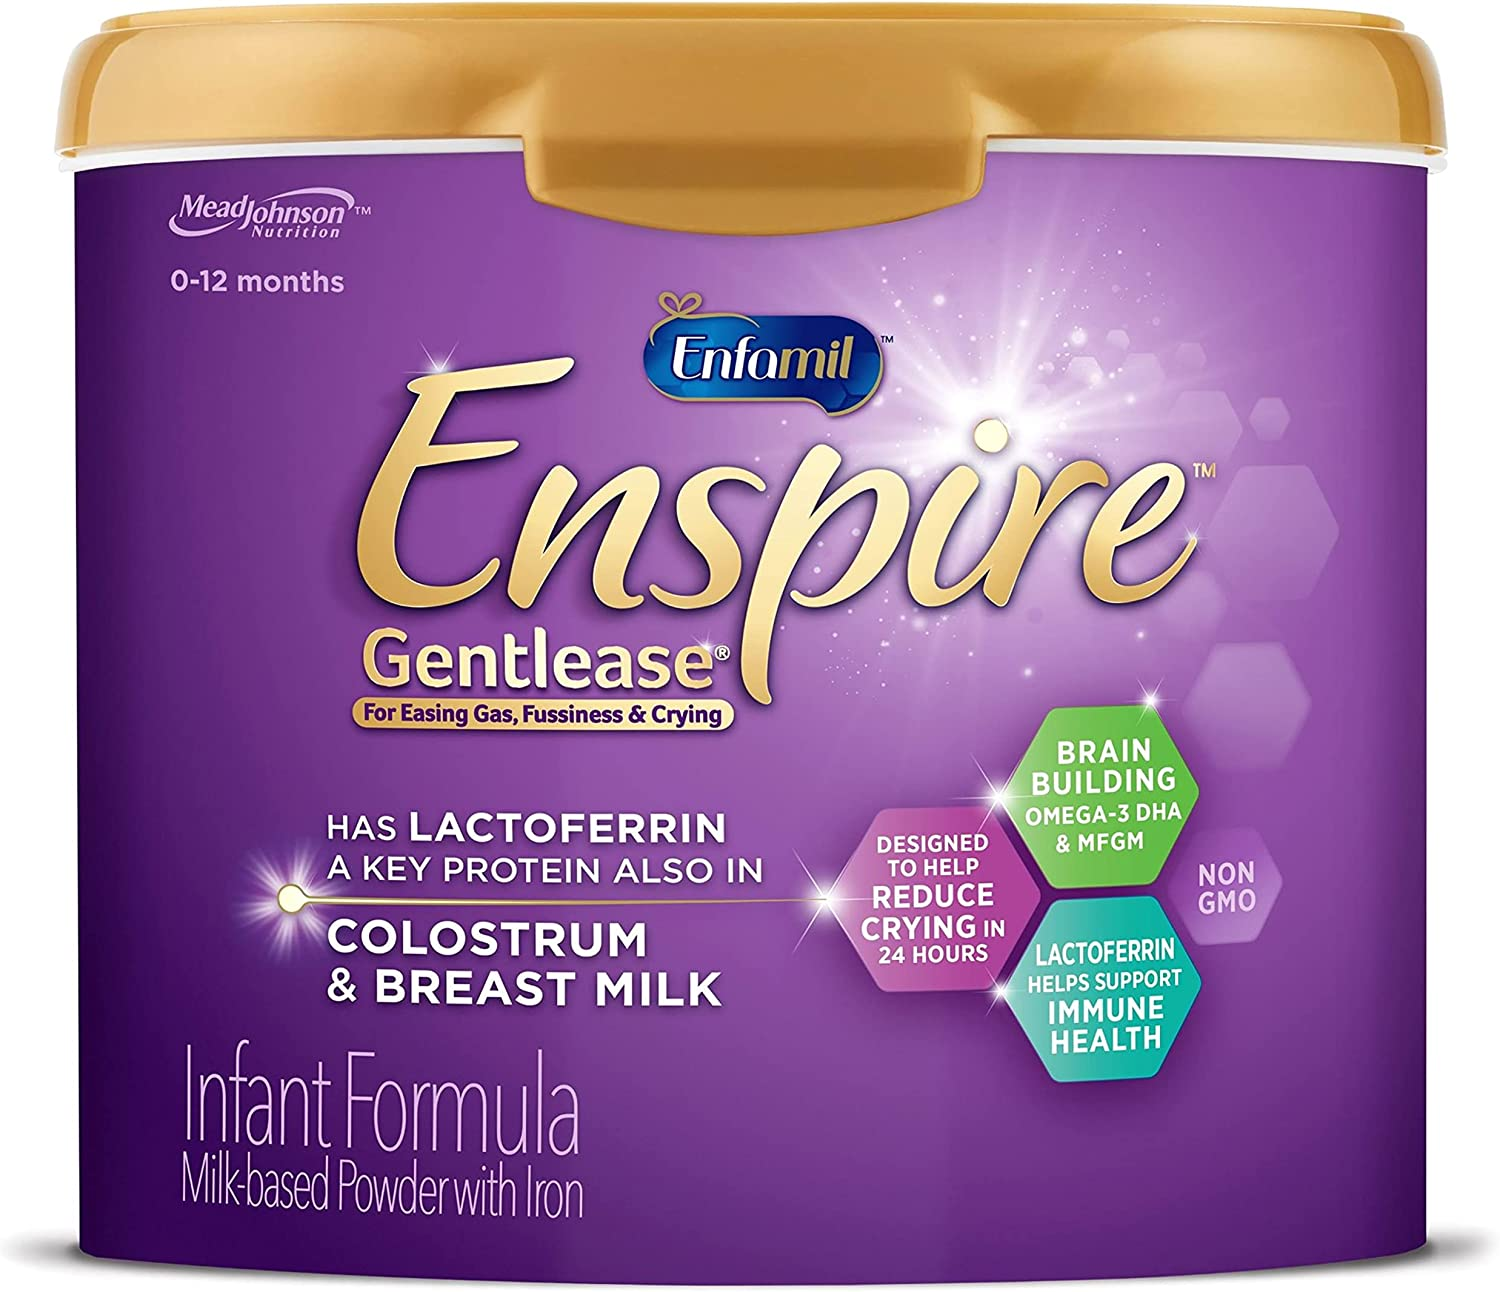 Enfamil Enspire Sales results No. Cheap mail order sales 1 Gentlease Baby with Formula Non-GM Lactofrerrin